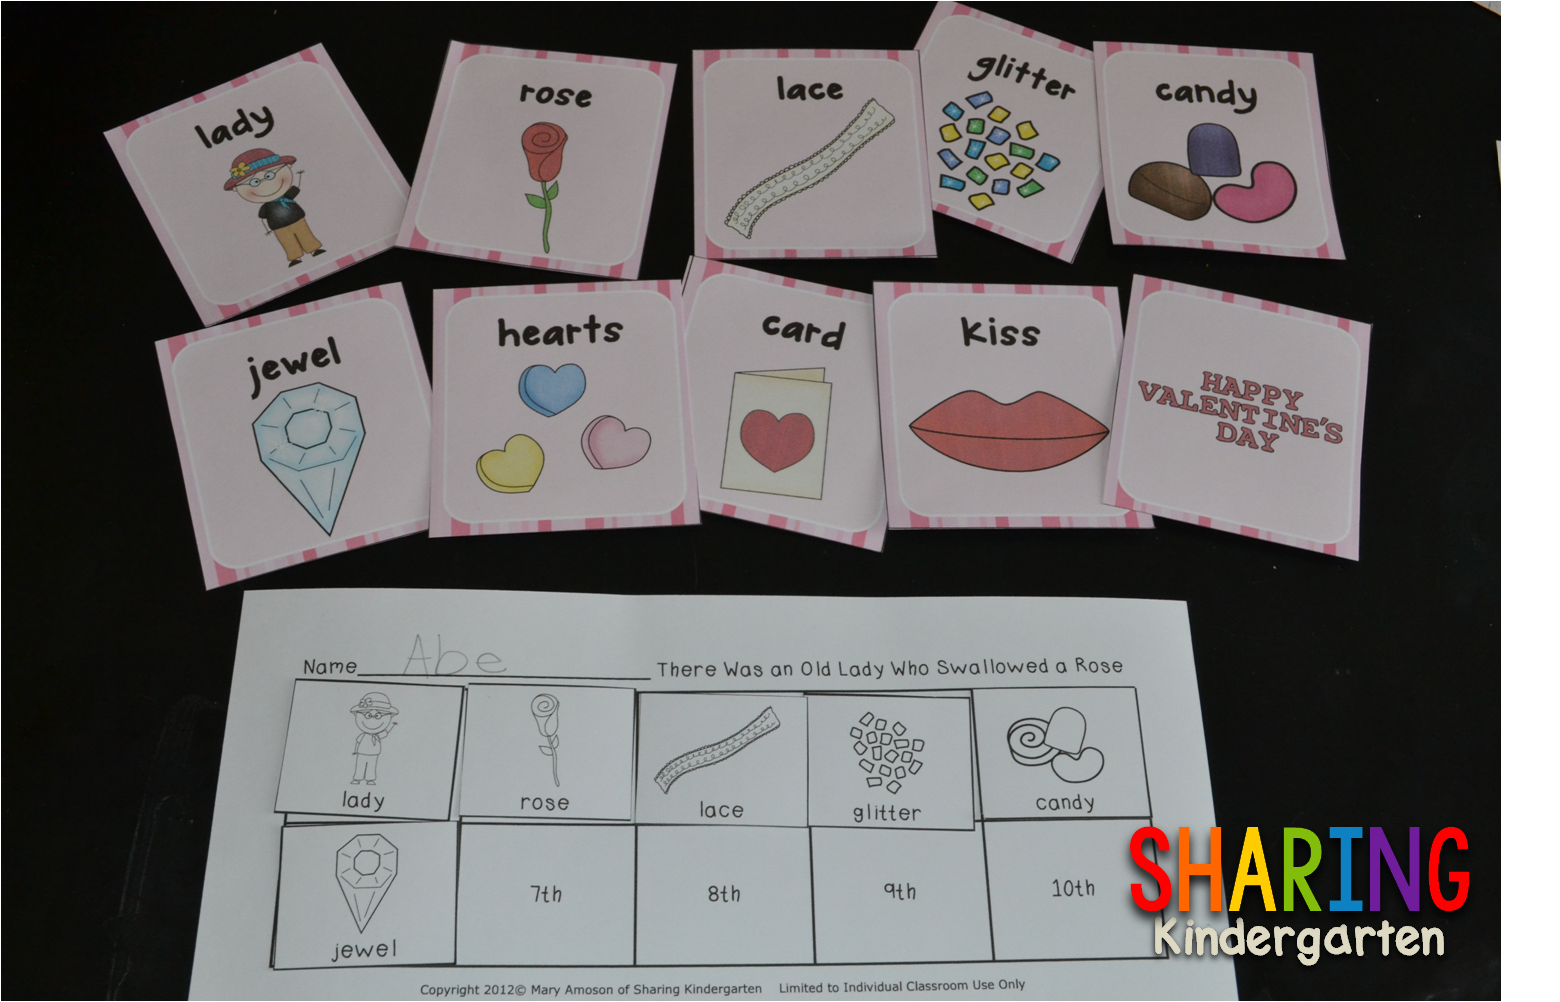 http://www.teacherspayteachers.com/Product/There-Was-an-Old-Lady-Who-Swallowed-a-Rose-Literacy-and-Math-462297